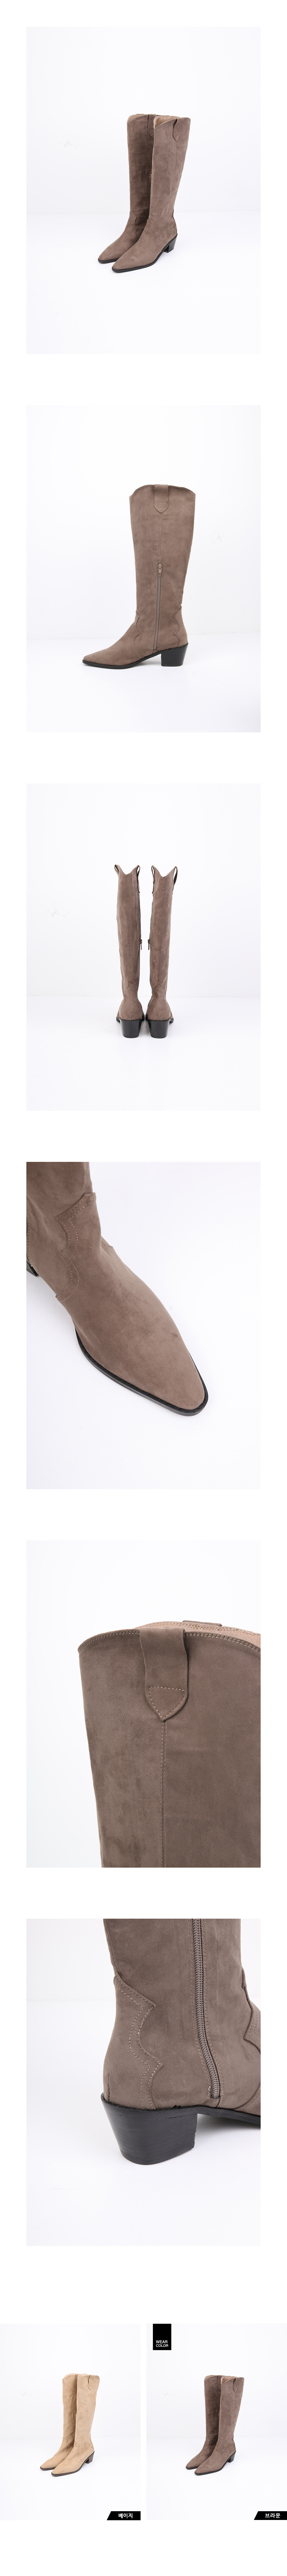 Ethnic suede long boots